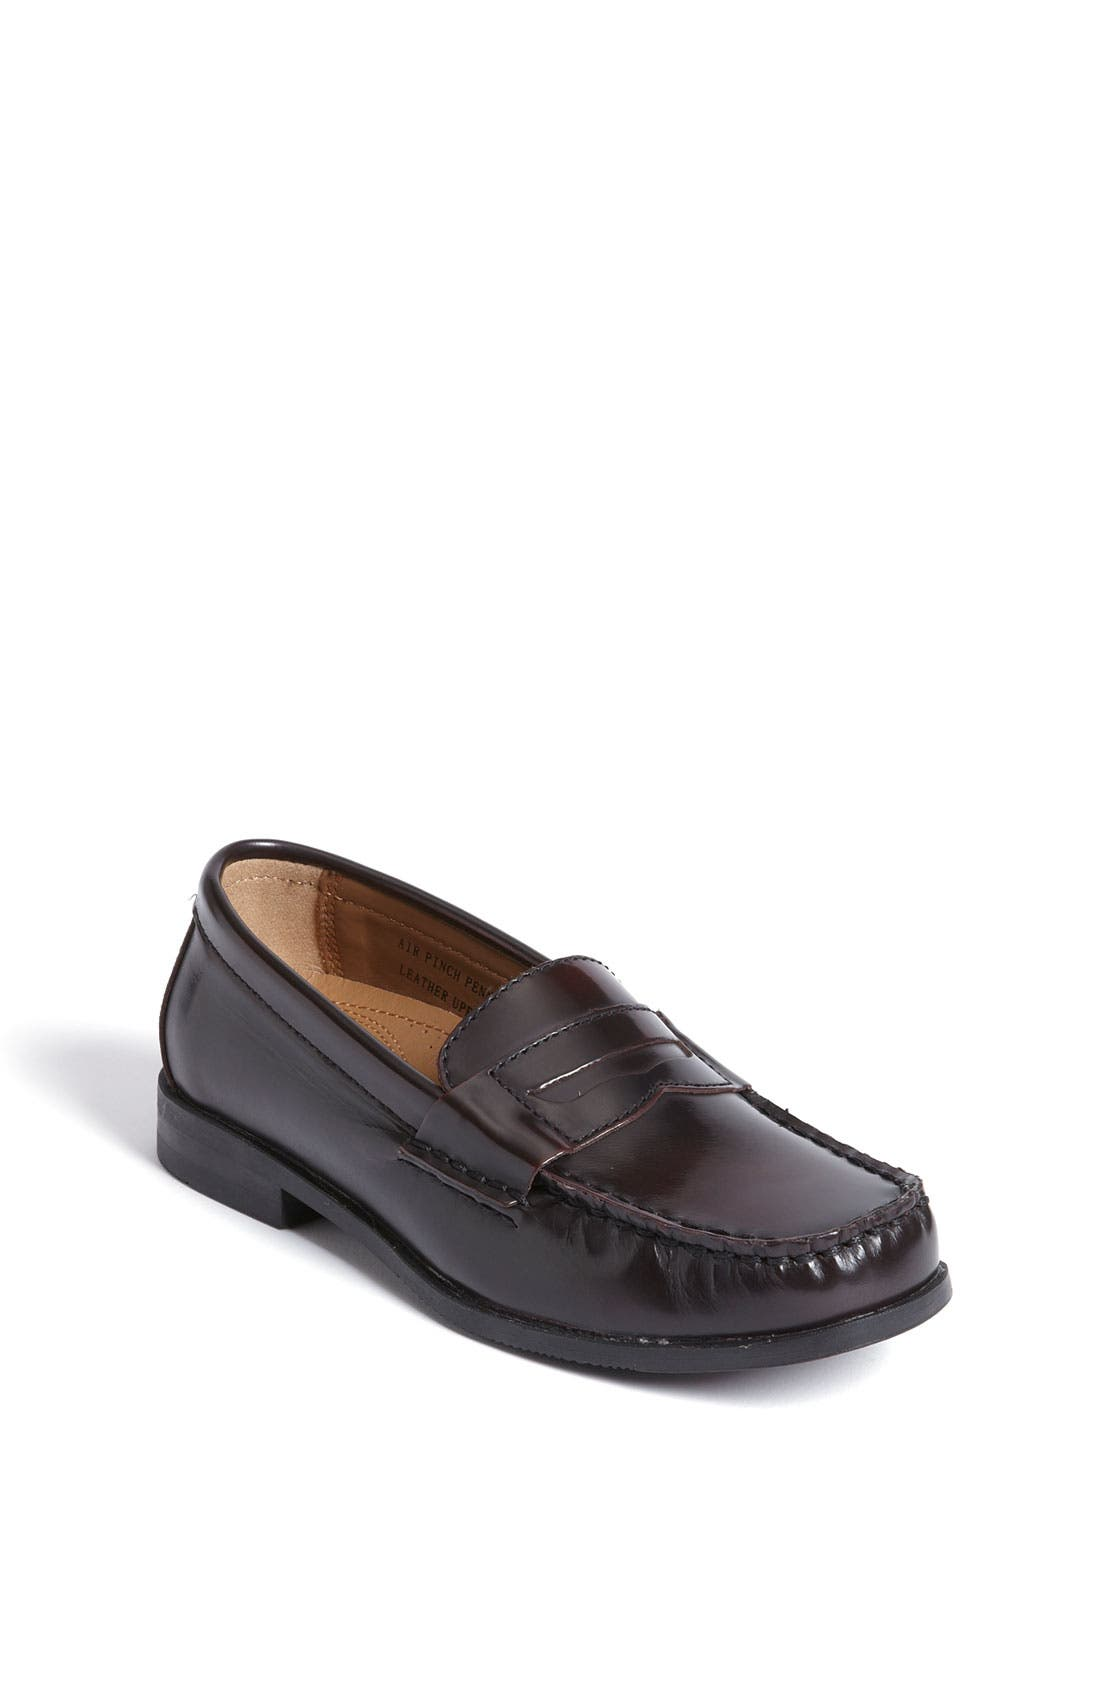 Main Image - Cole Haan 'Air Pinch' Penny Loafer (Toddler, Little Kid & Big Kid)